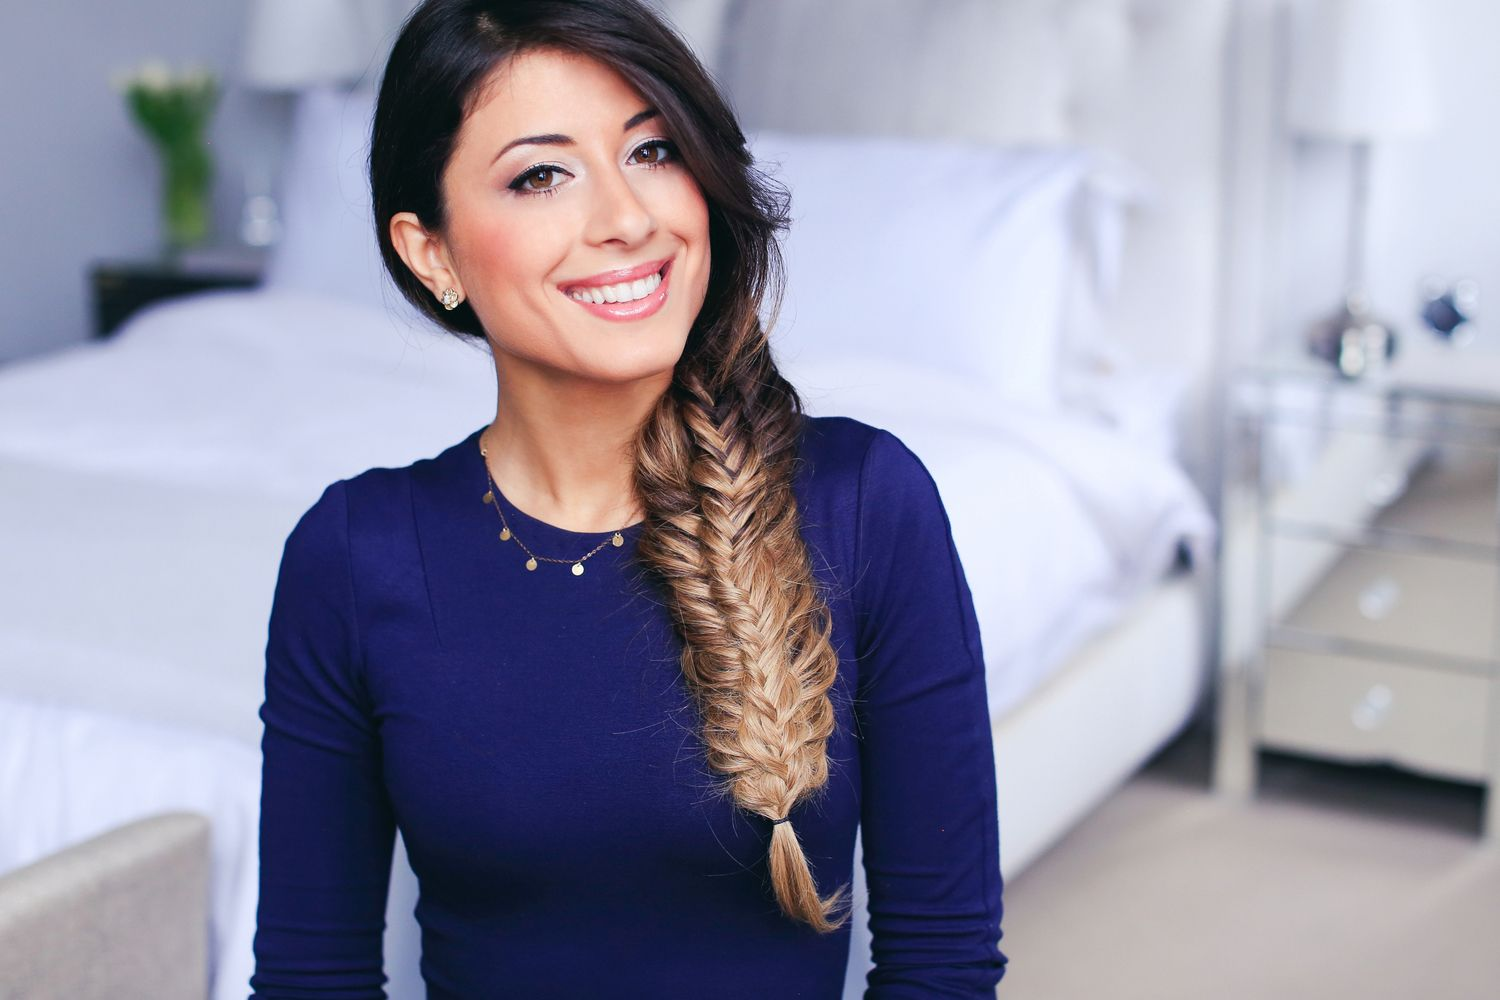 Double Fishtail Braid | super cool, easy and cute braid hairstyle | ombre hair, Luxy hair extensions | See the full tutorial on our Youtube channel: https://www.youtube.com/watch?v=EawDdwtsrGA